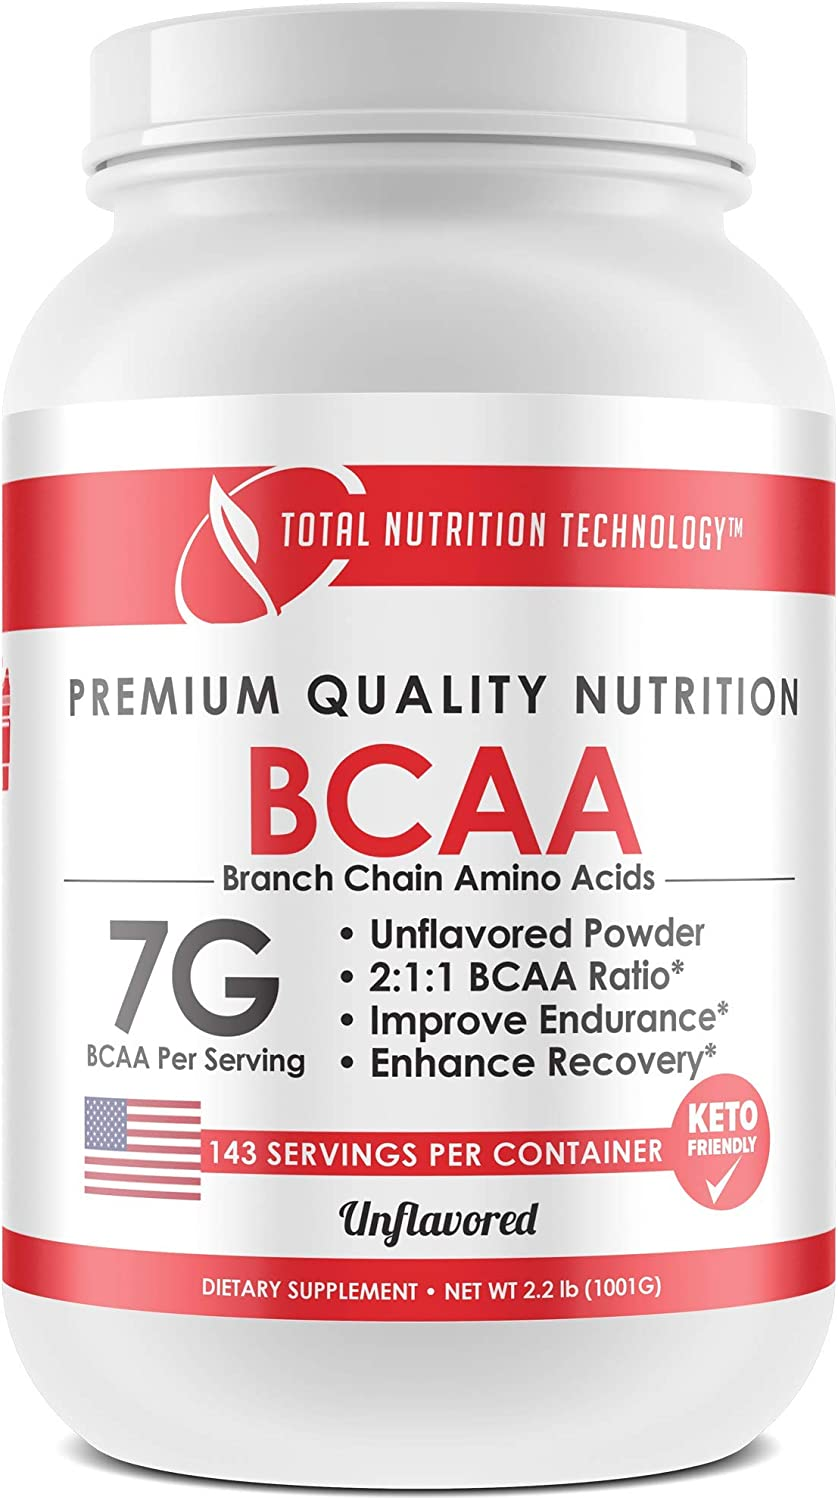 BCAA Powder – unflavored – 2 1 1 Ratio – by Total Nutrition Technology 1001 Gram